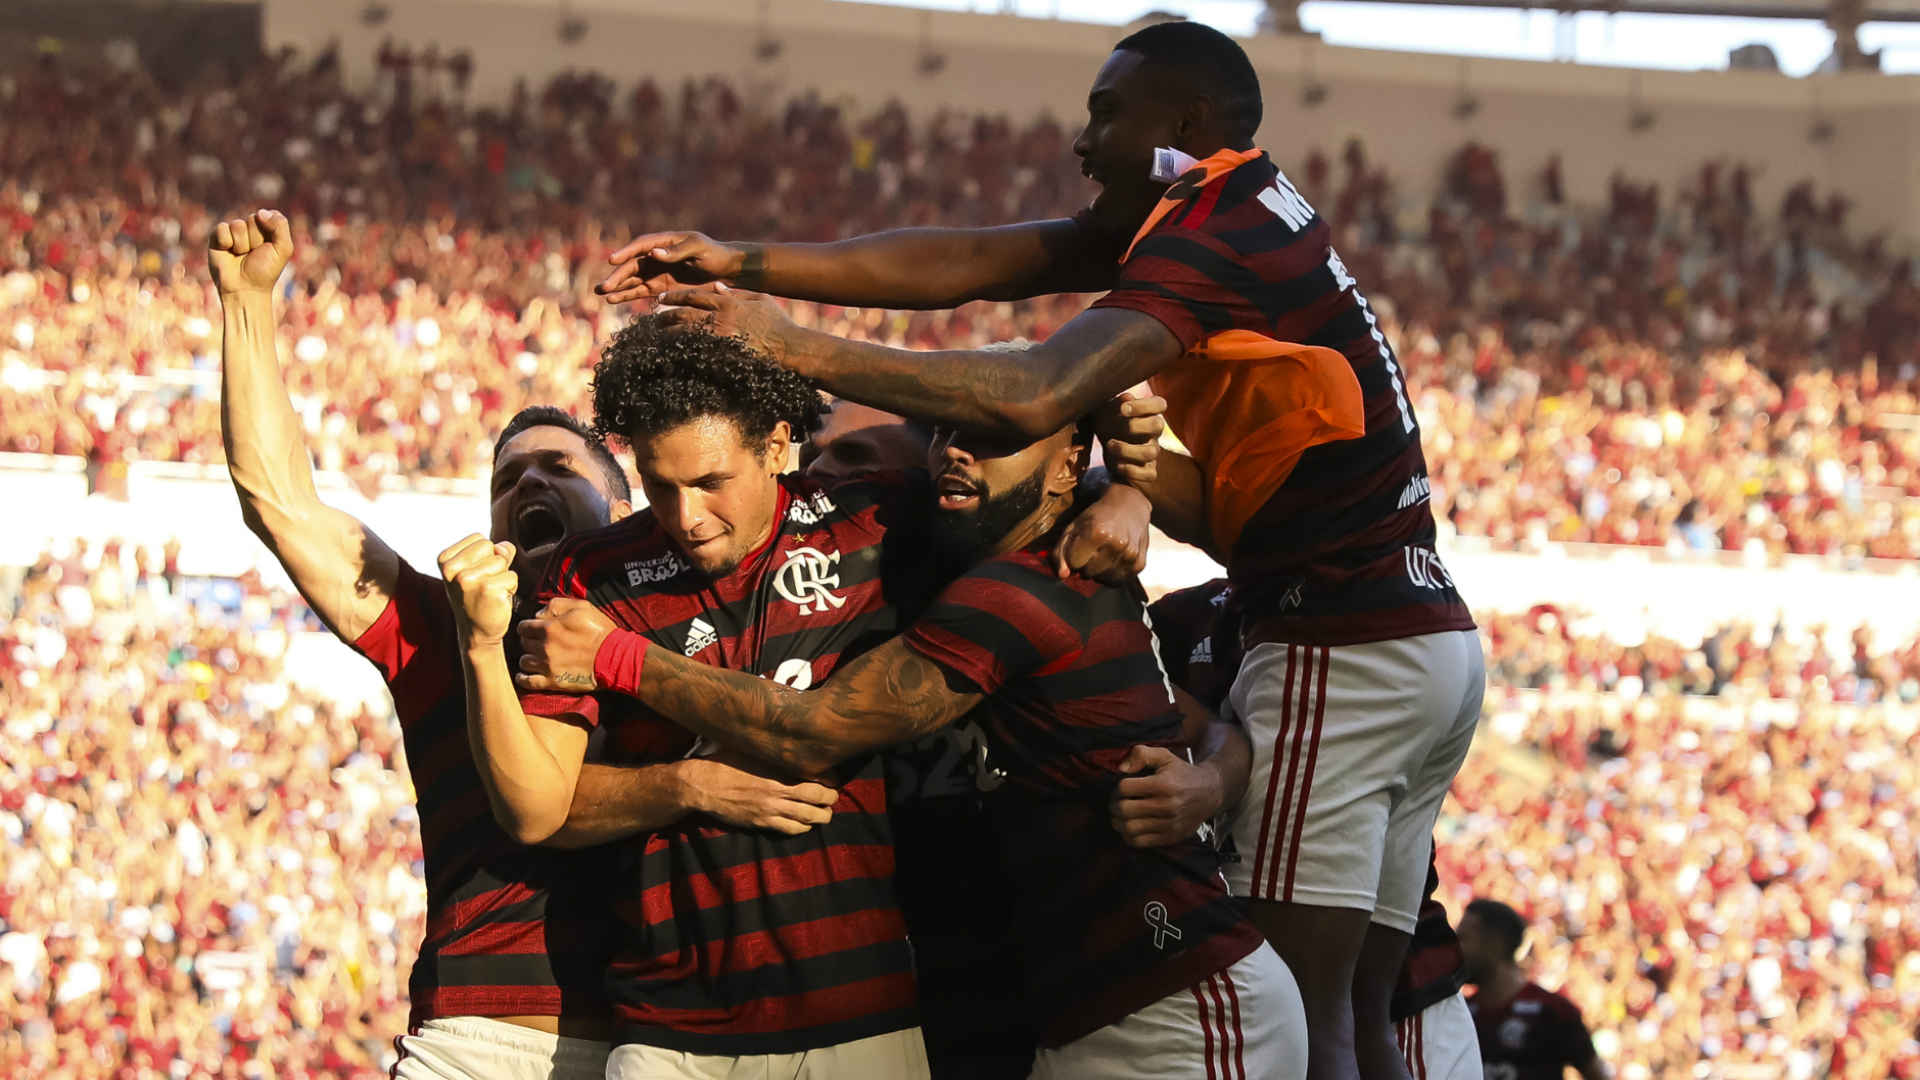 Copa Libertadores Review: Flamengo, LDU Quito pip Penarol on dramatic final day